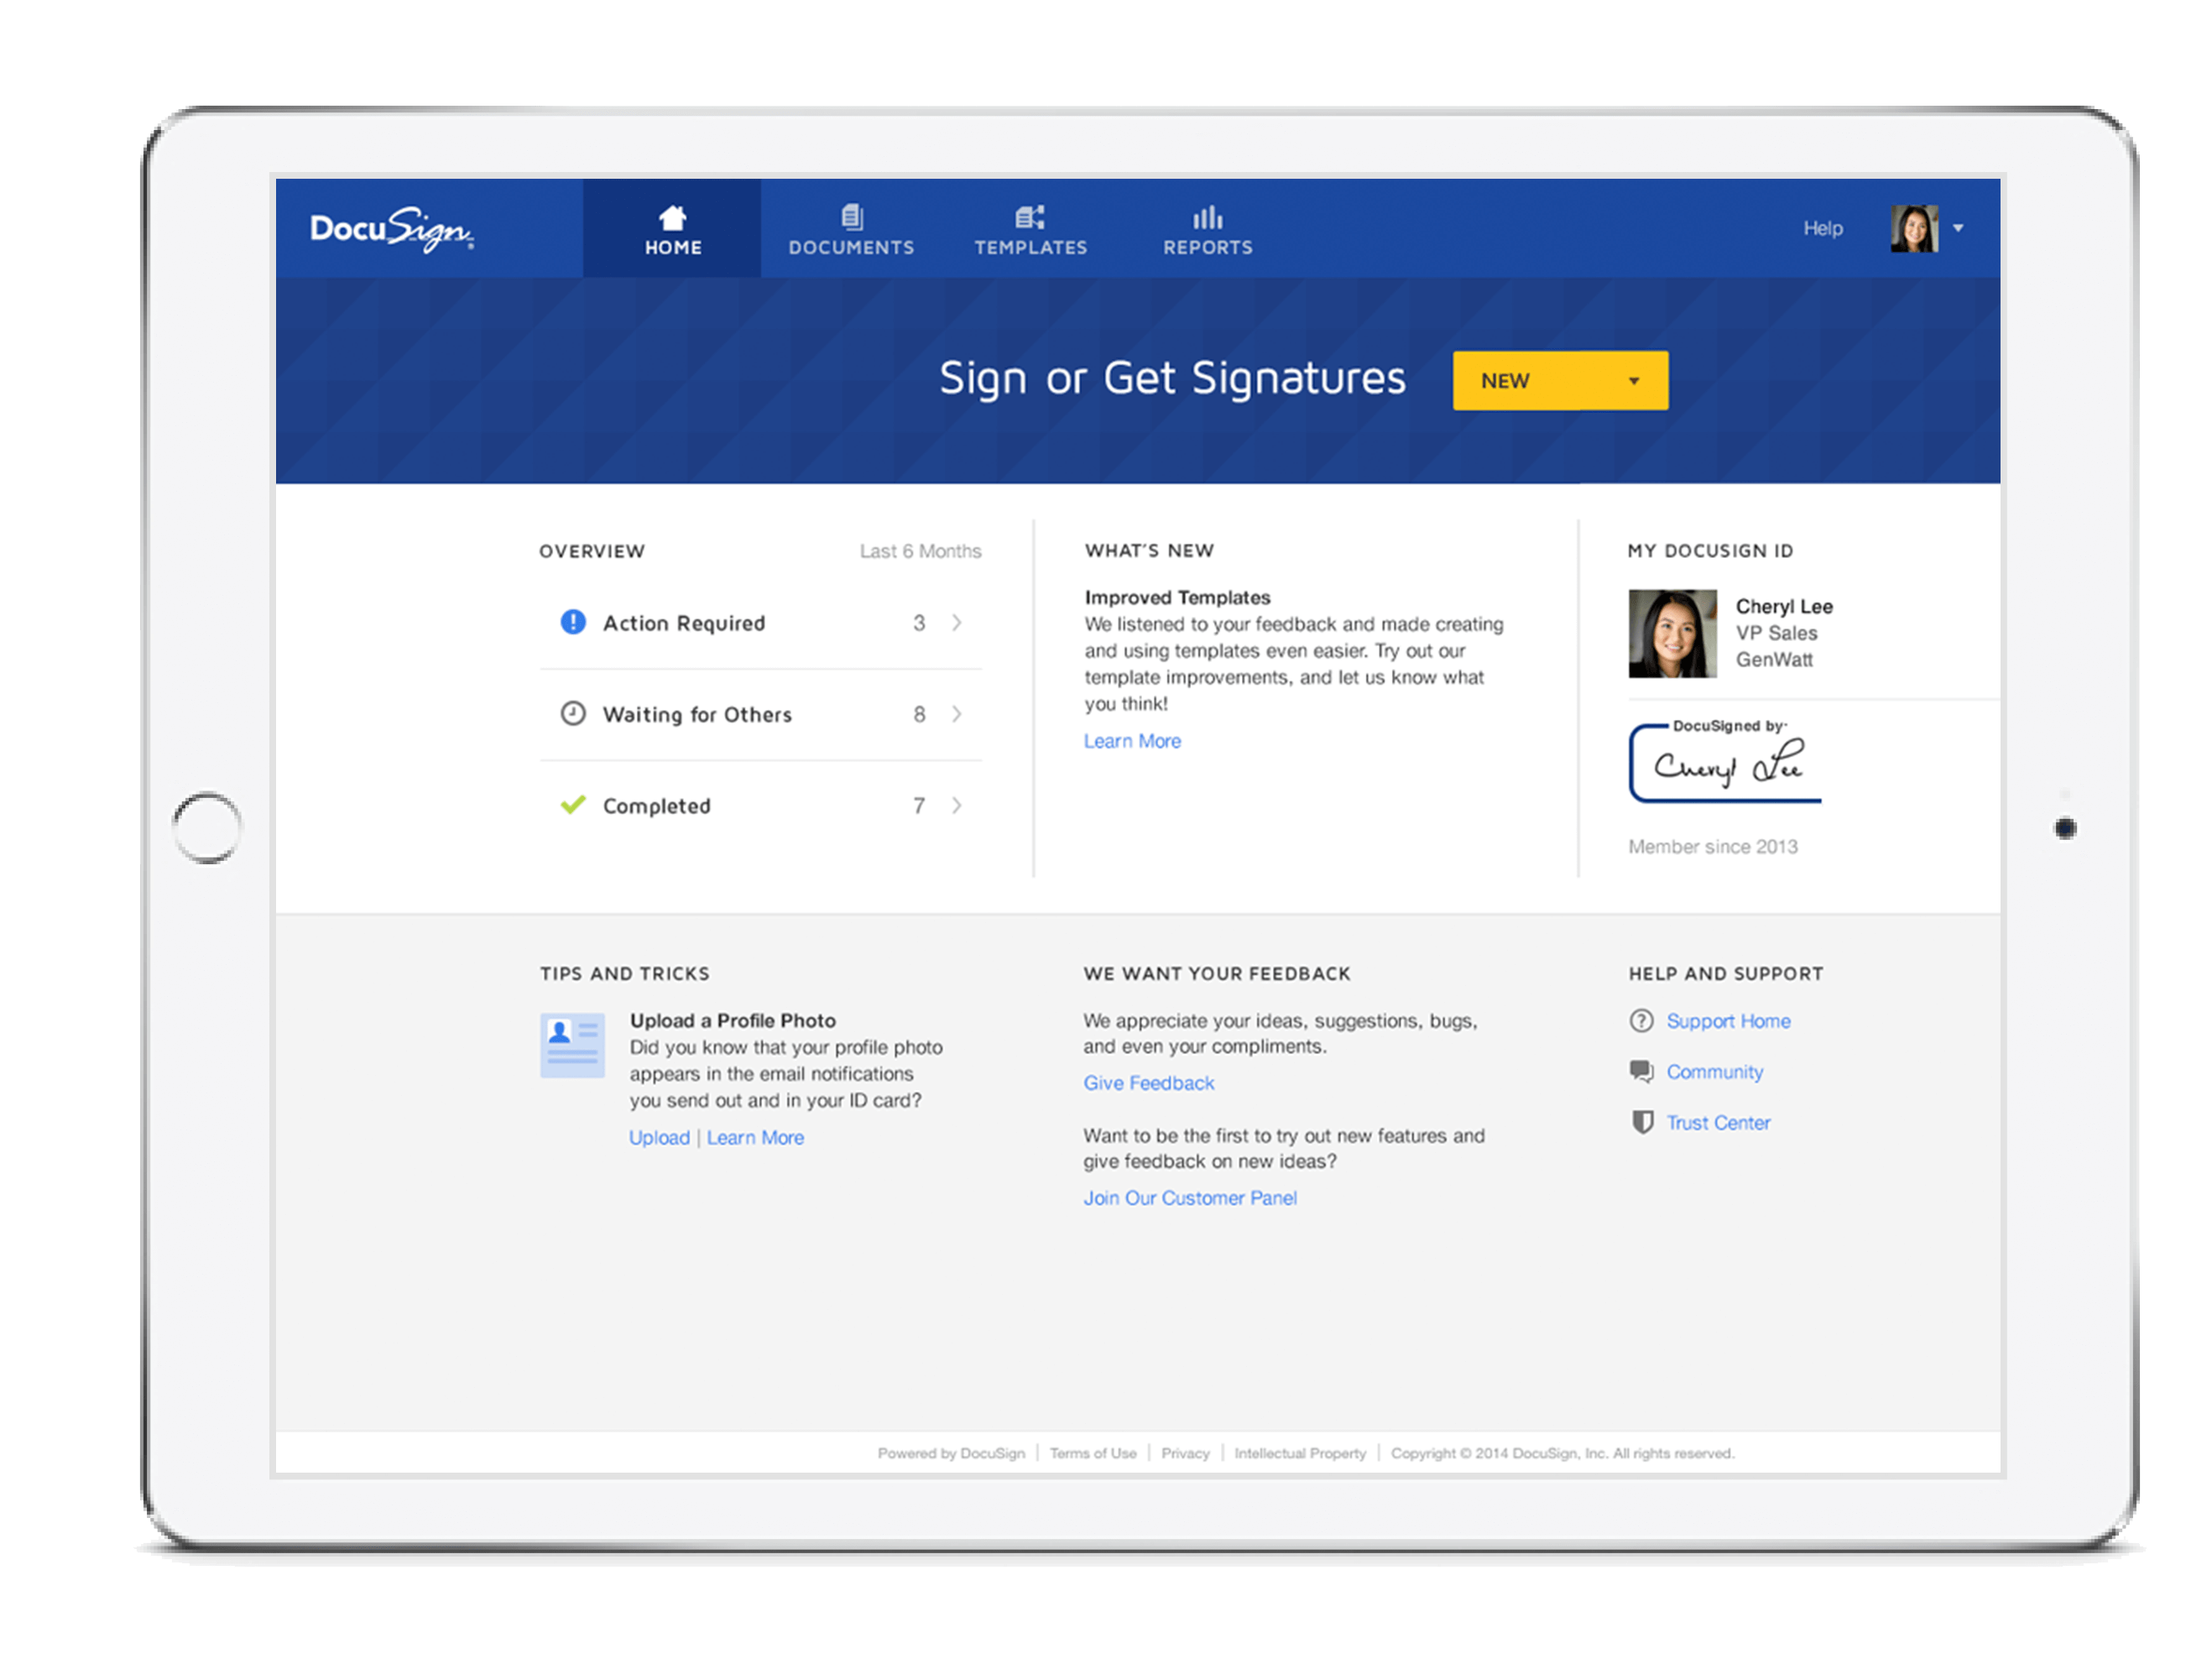 DocuSign signing experience